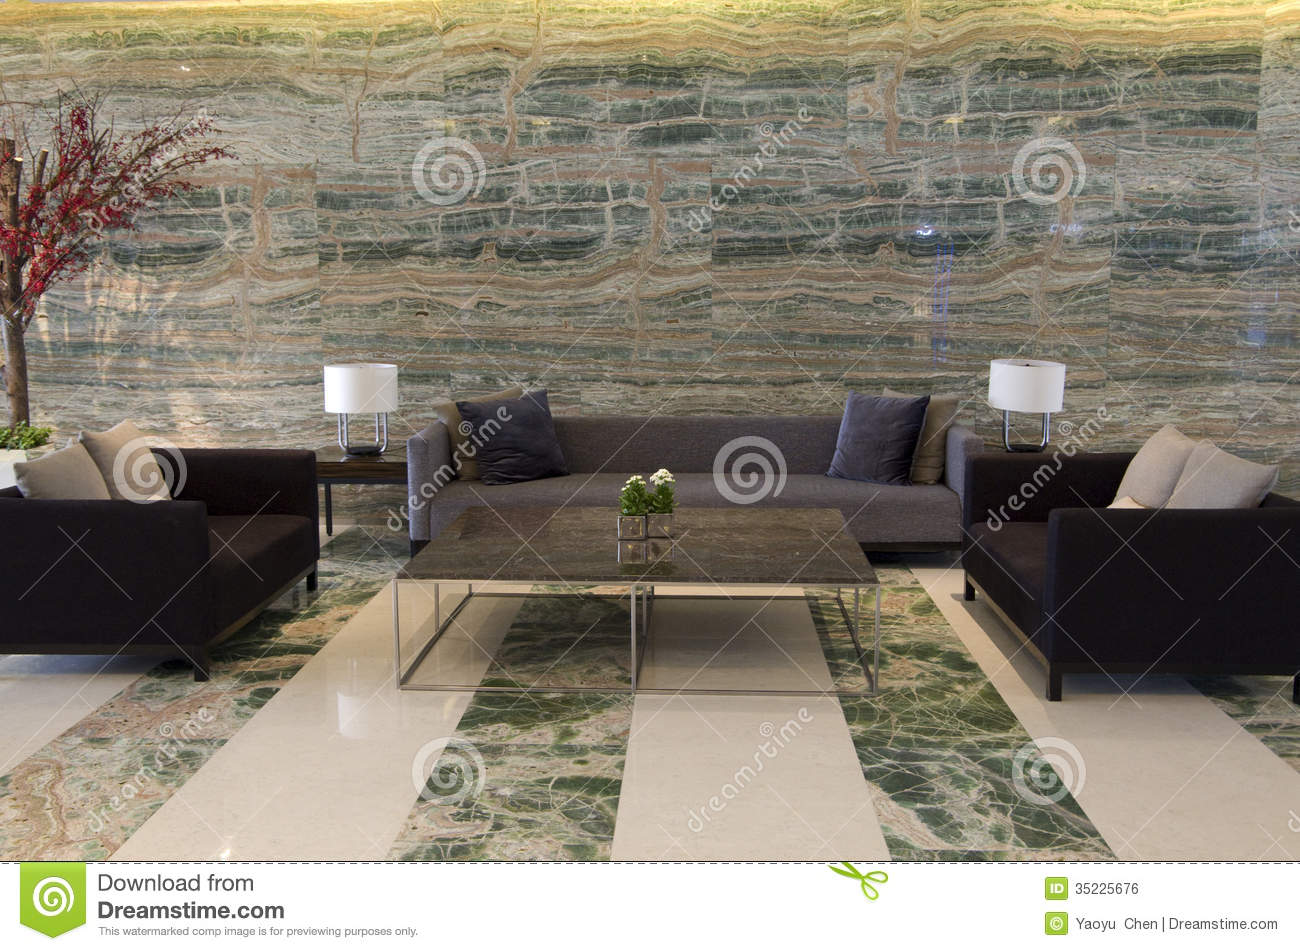 Luxury hotel lobby stock photo image of elegant luxury for Very luxury hotels